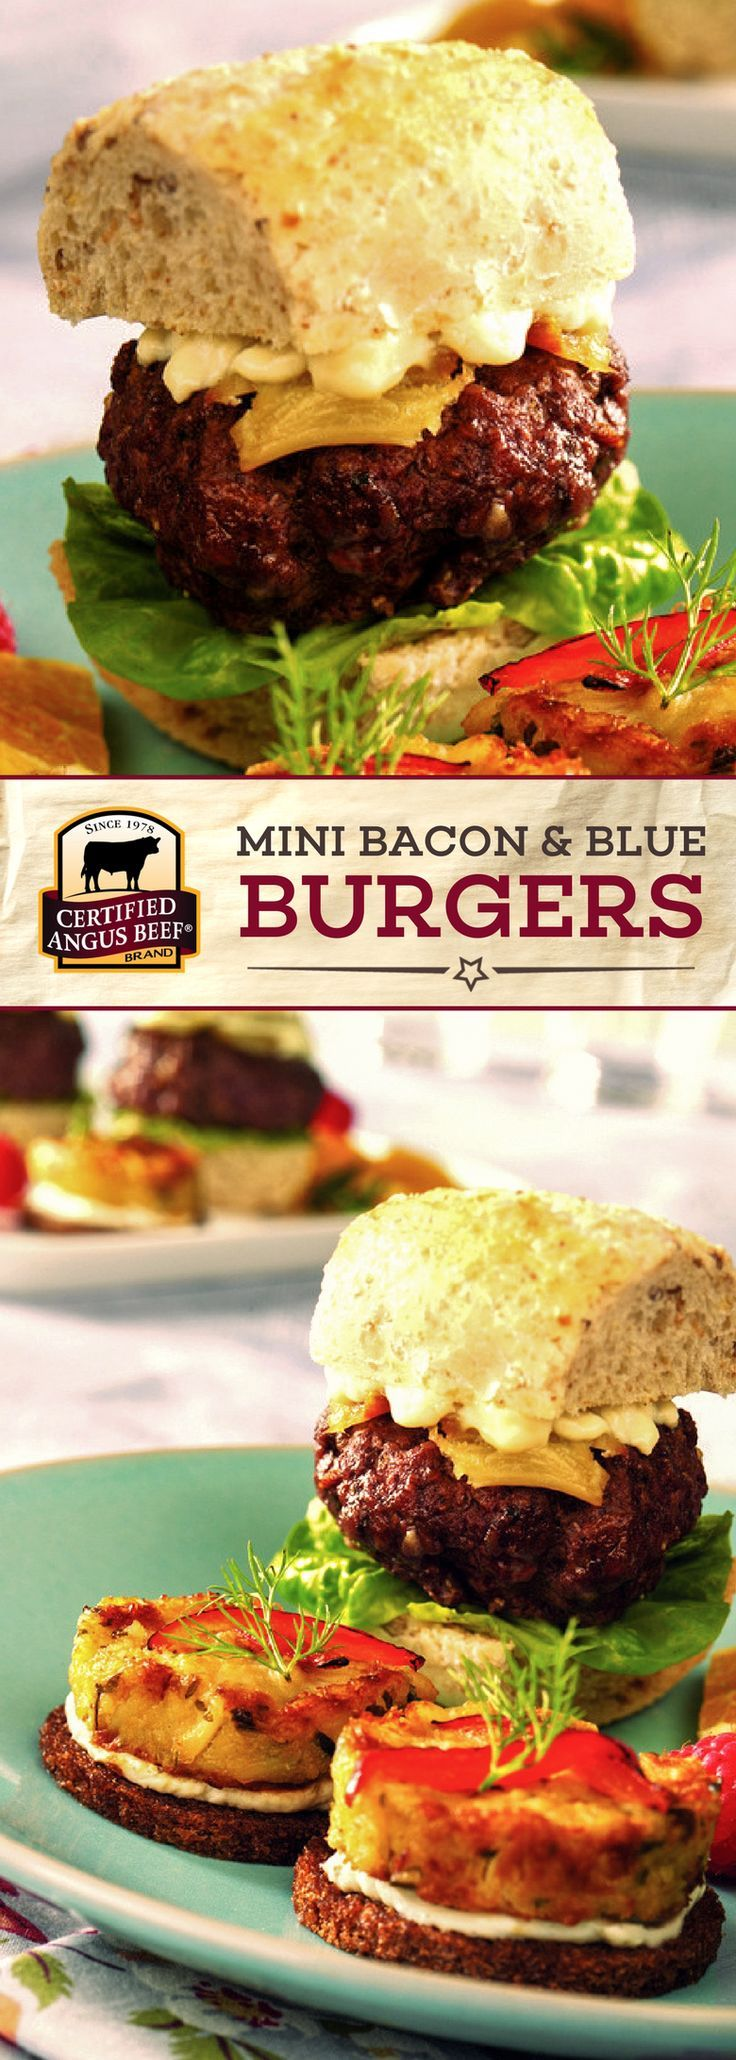 Certified Angus Beef®️️️ brand Mini Bacon & Blue Burgers are SO delicious, and the perfect size! The BEST ground beef is stuffed with blue cheese and BACON for built-in delicious flavor. This mini burger recipe is a MUST-TRY! #bestangusbeef #certifiedangusbeef #beefrecipe #burgerrecipe